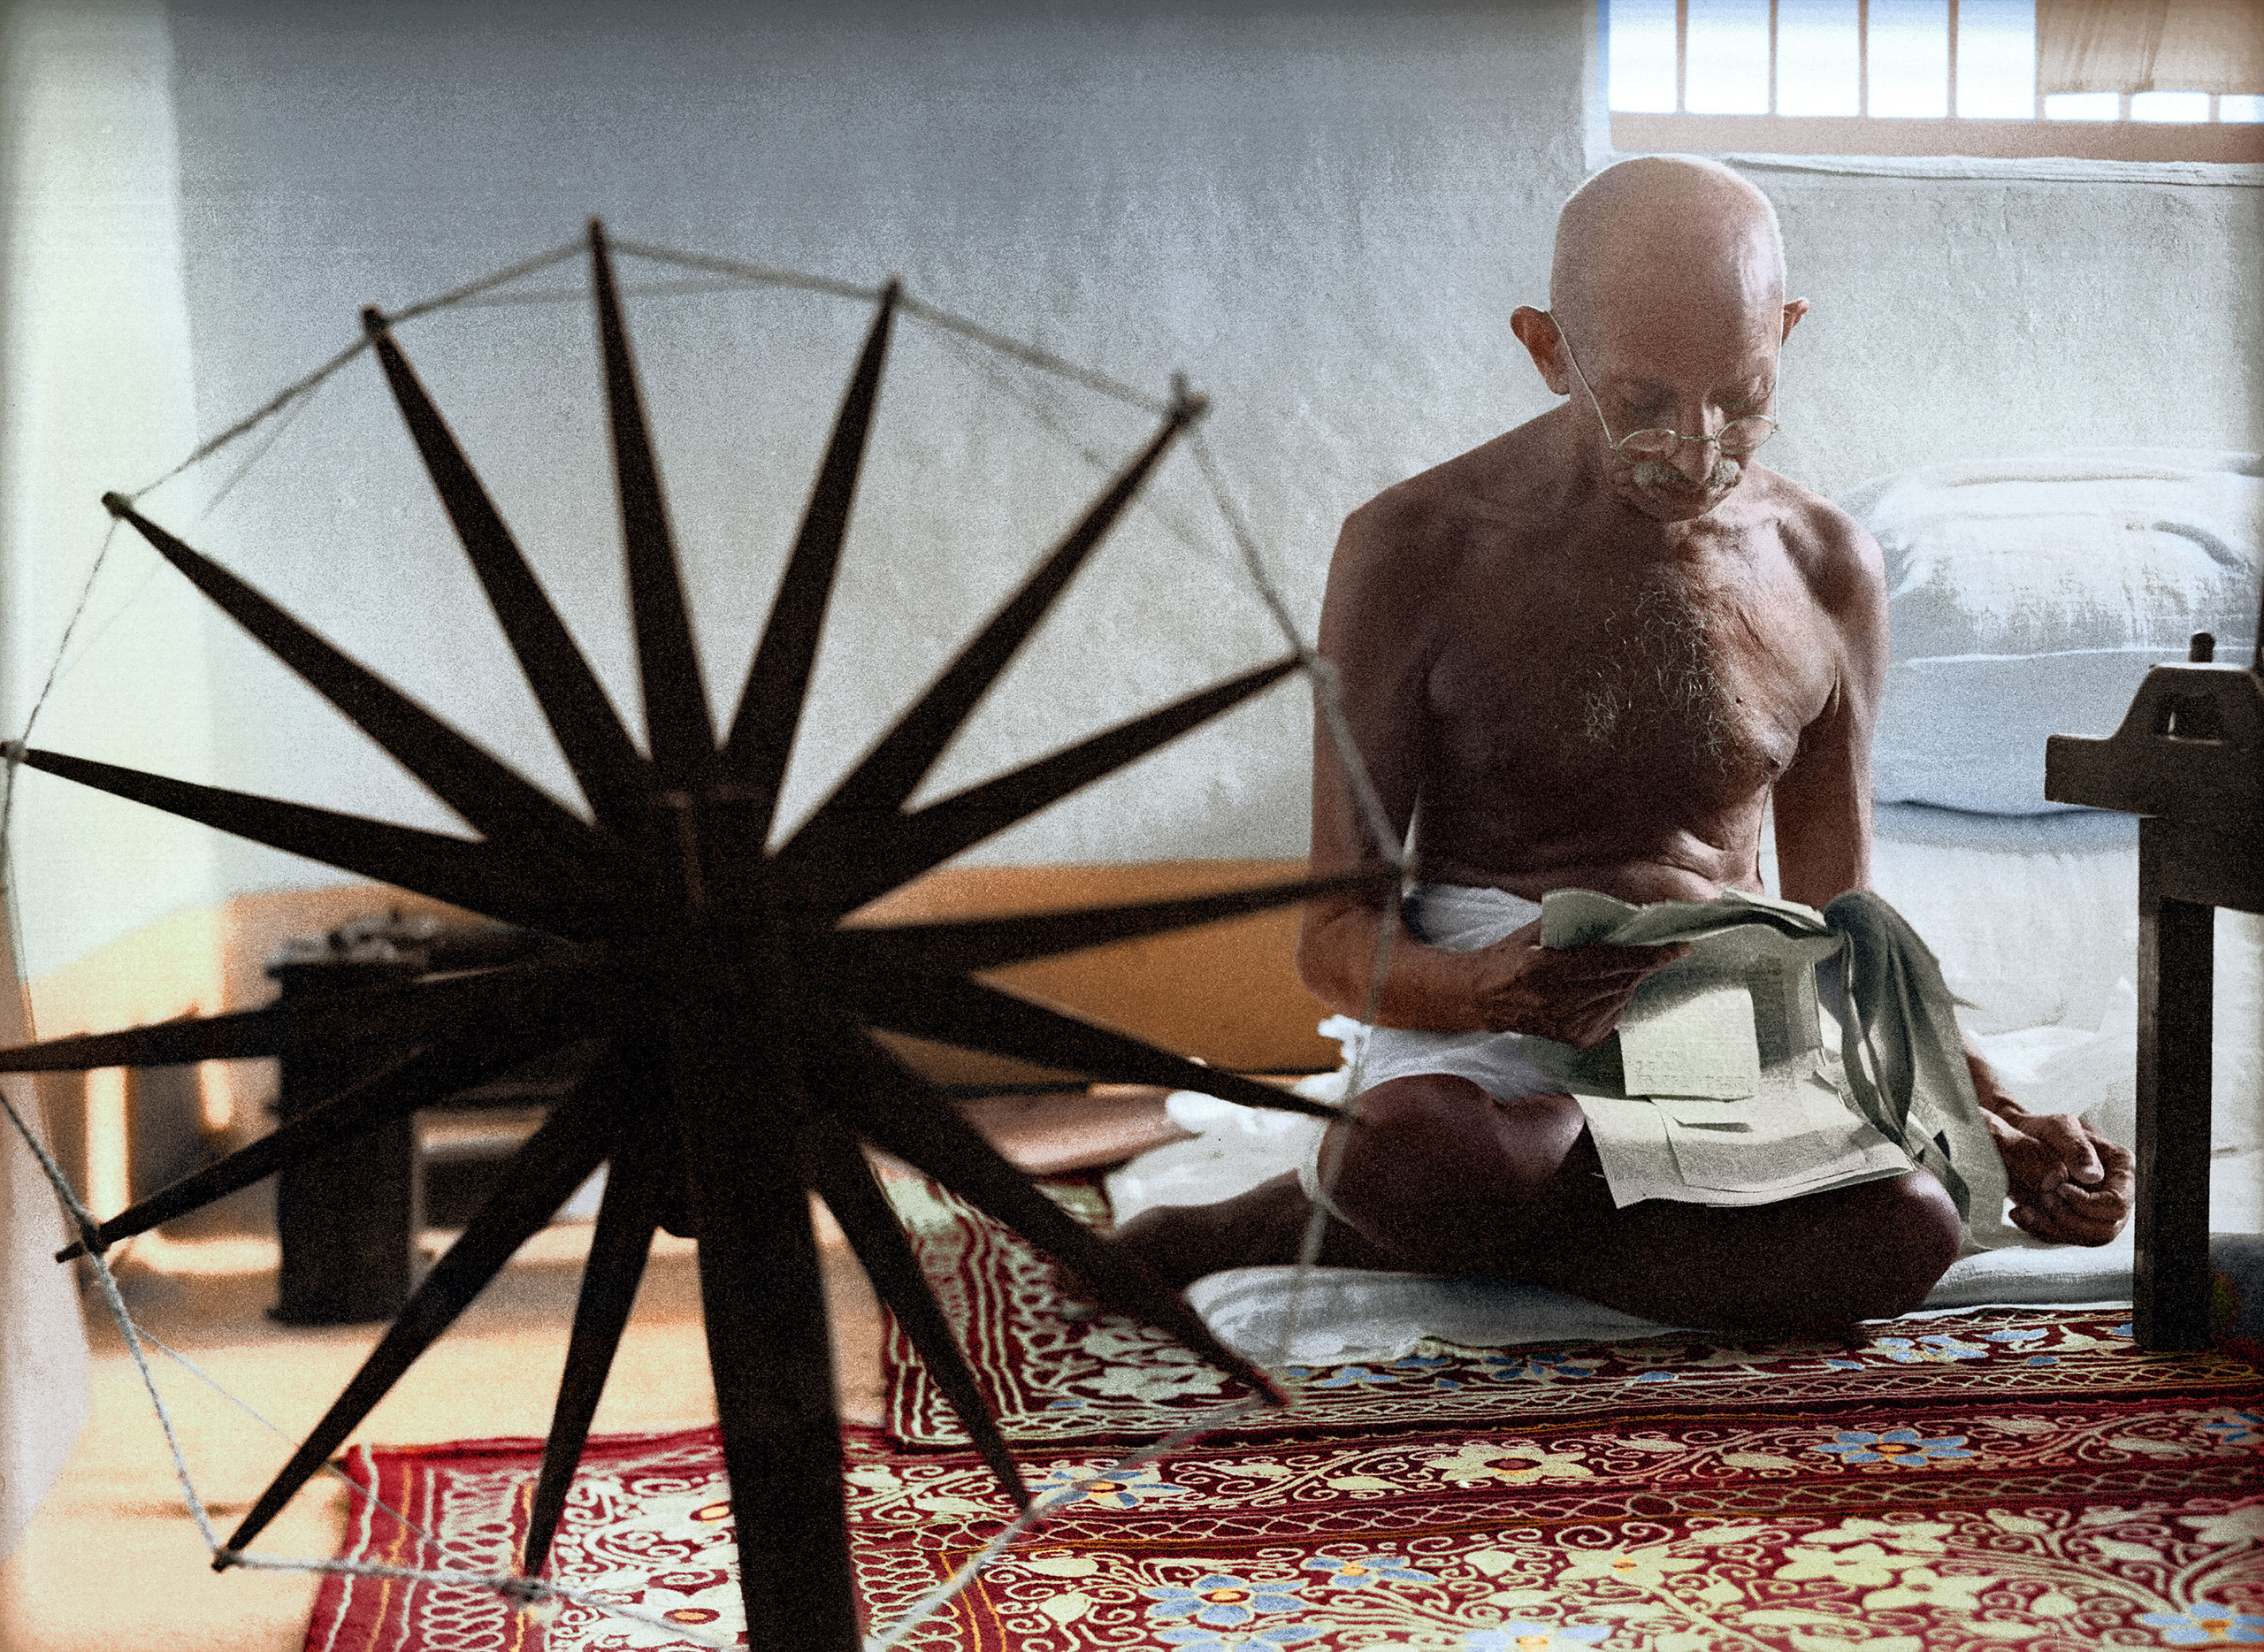 Gandhi and the Spinning Wheel by Margaret Bourke-White, 1946.